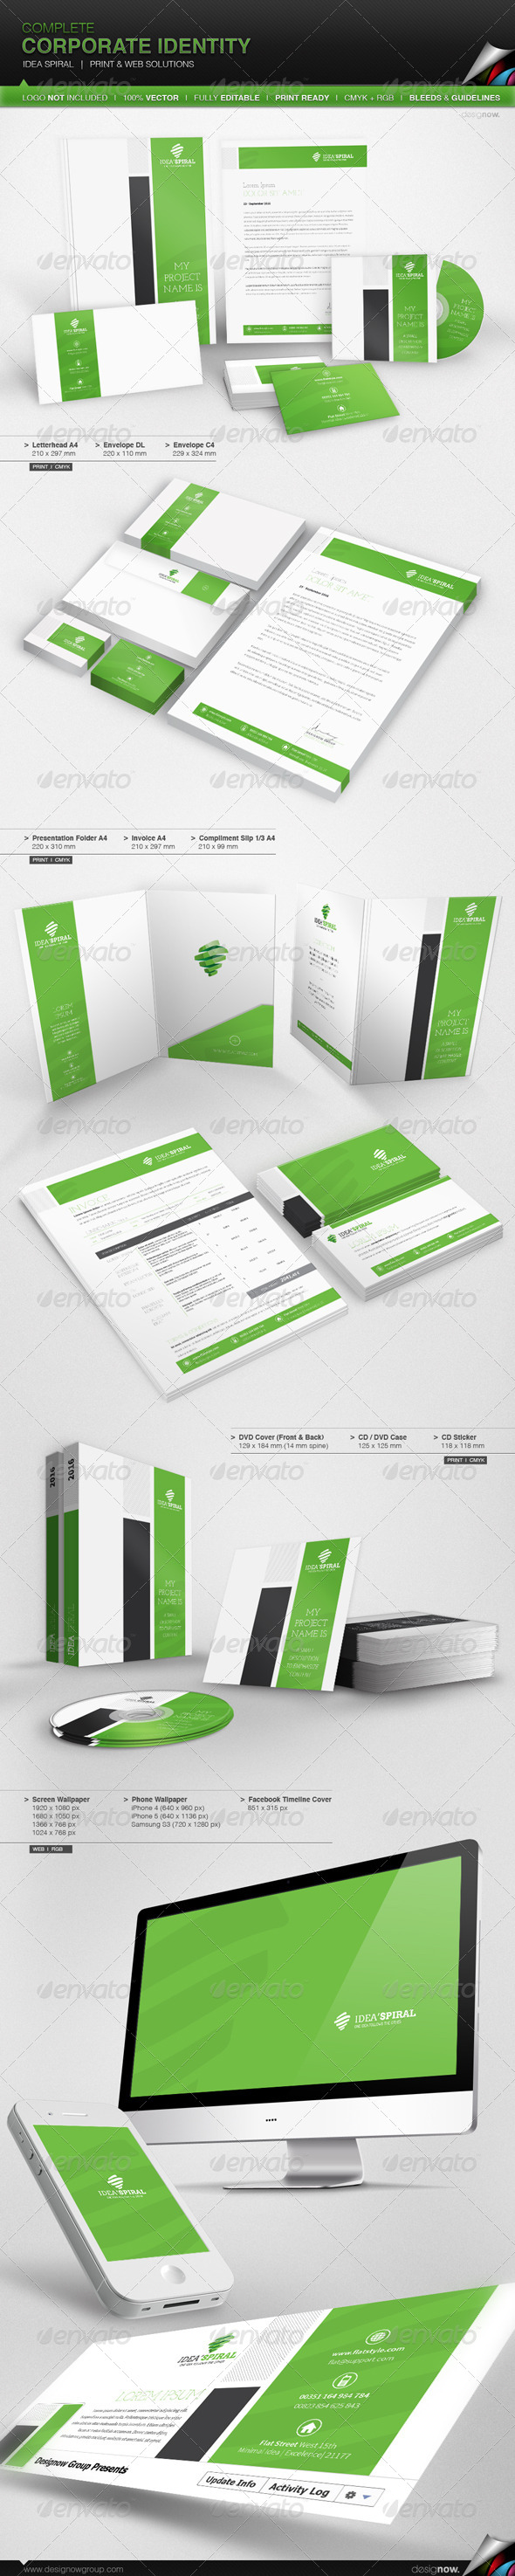 GraphicRiver Corporate Identity Idea Spiral 5228838